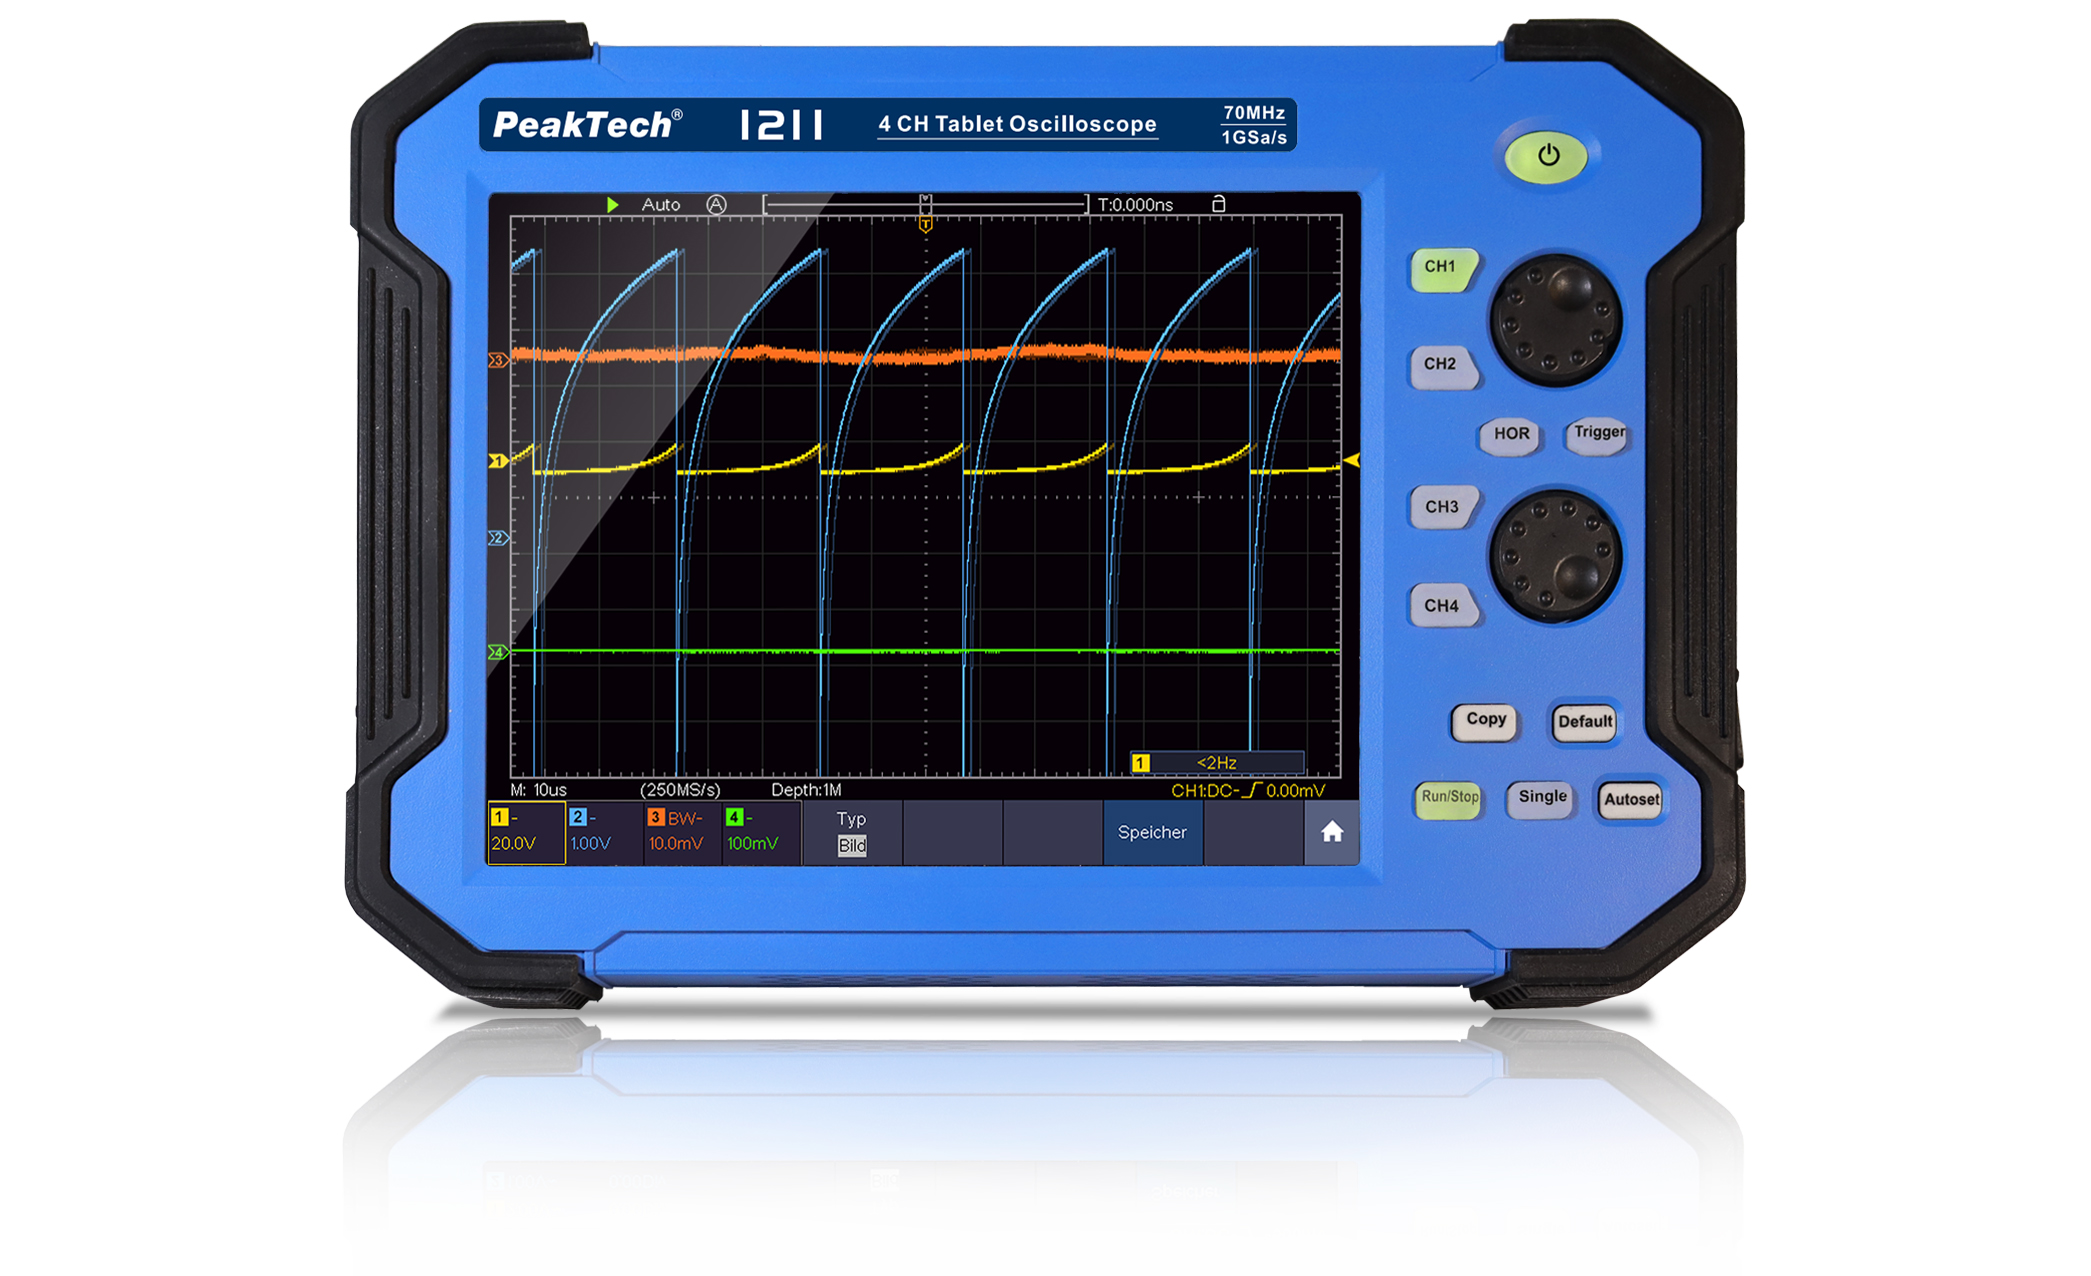 «PeakTech® P 1211» 70 MHz / 4 CH, 1 GS/s tablet oscilloscope